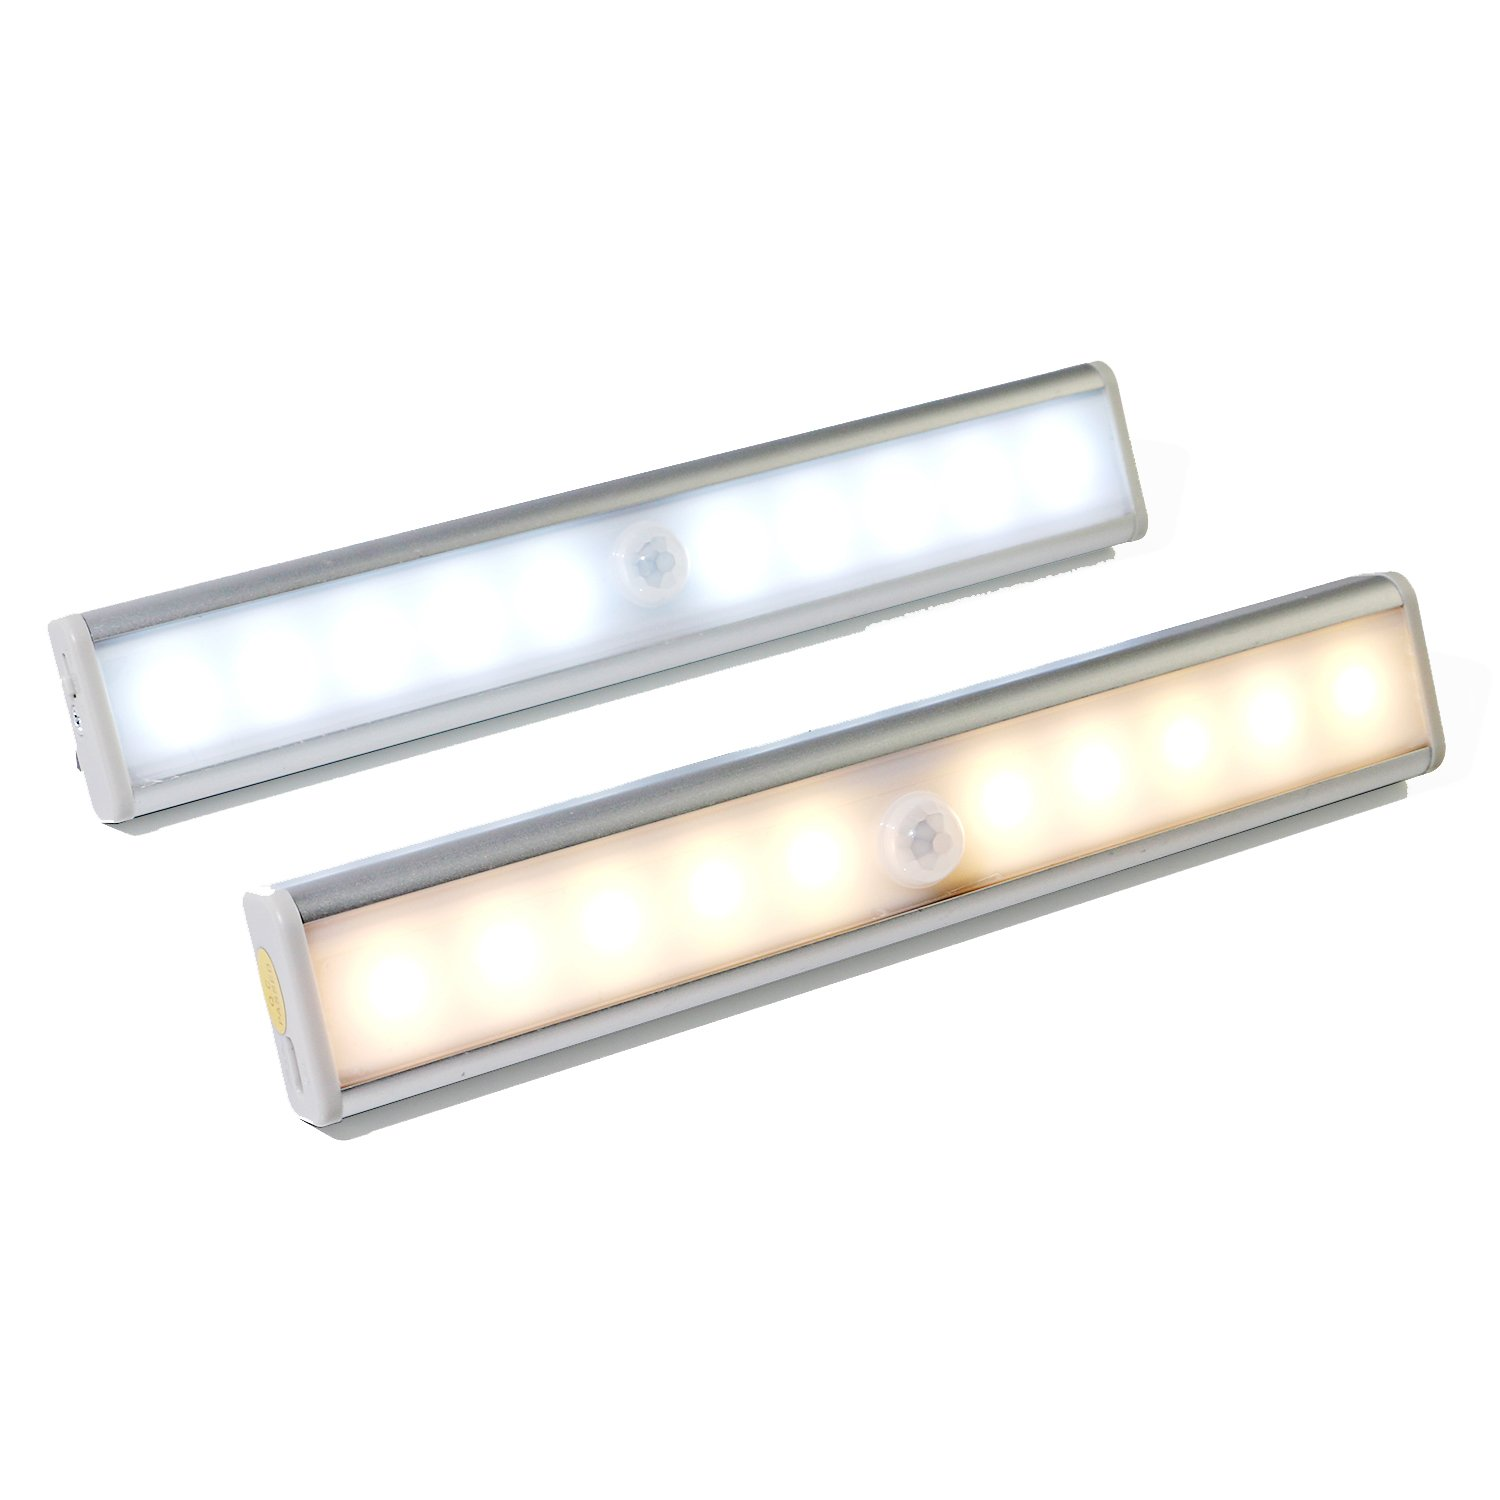 rechargeable under cabinet lights portable diy stick on anywhere 10 led night light motion sensor for closet wardrobe cupboard patio stairs hallway